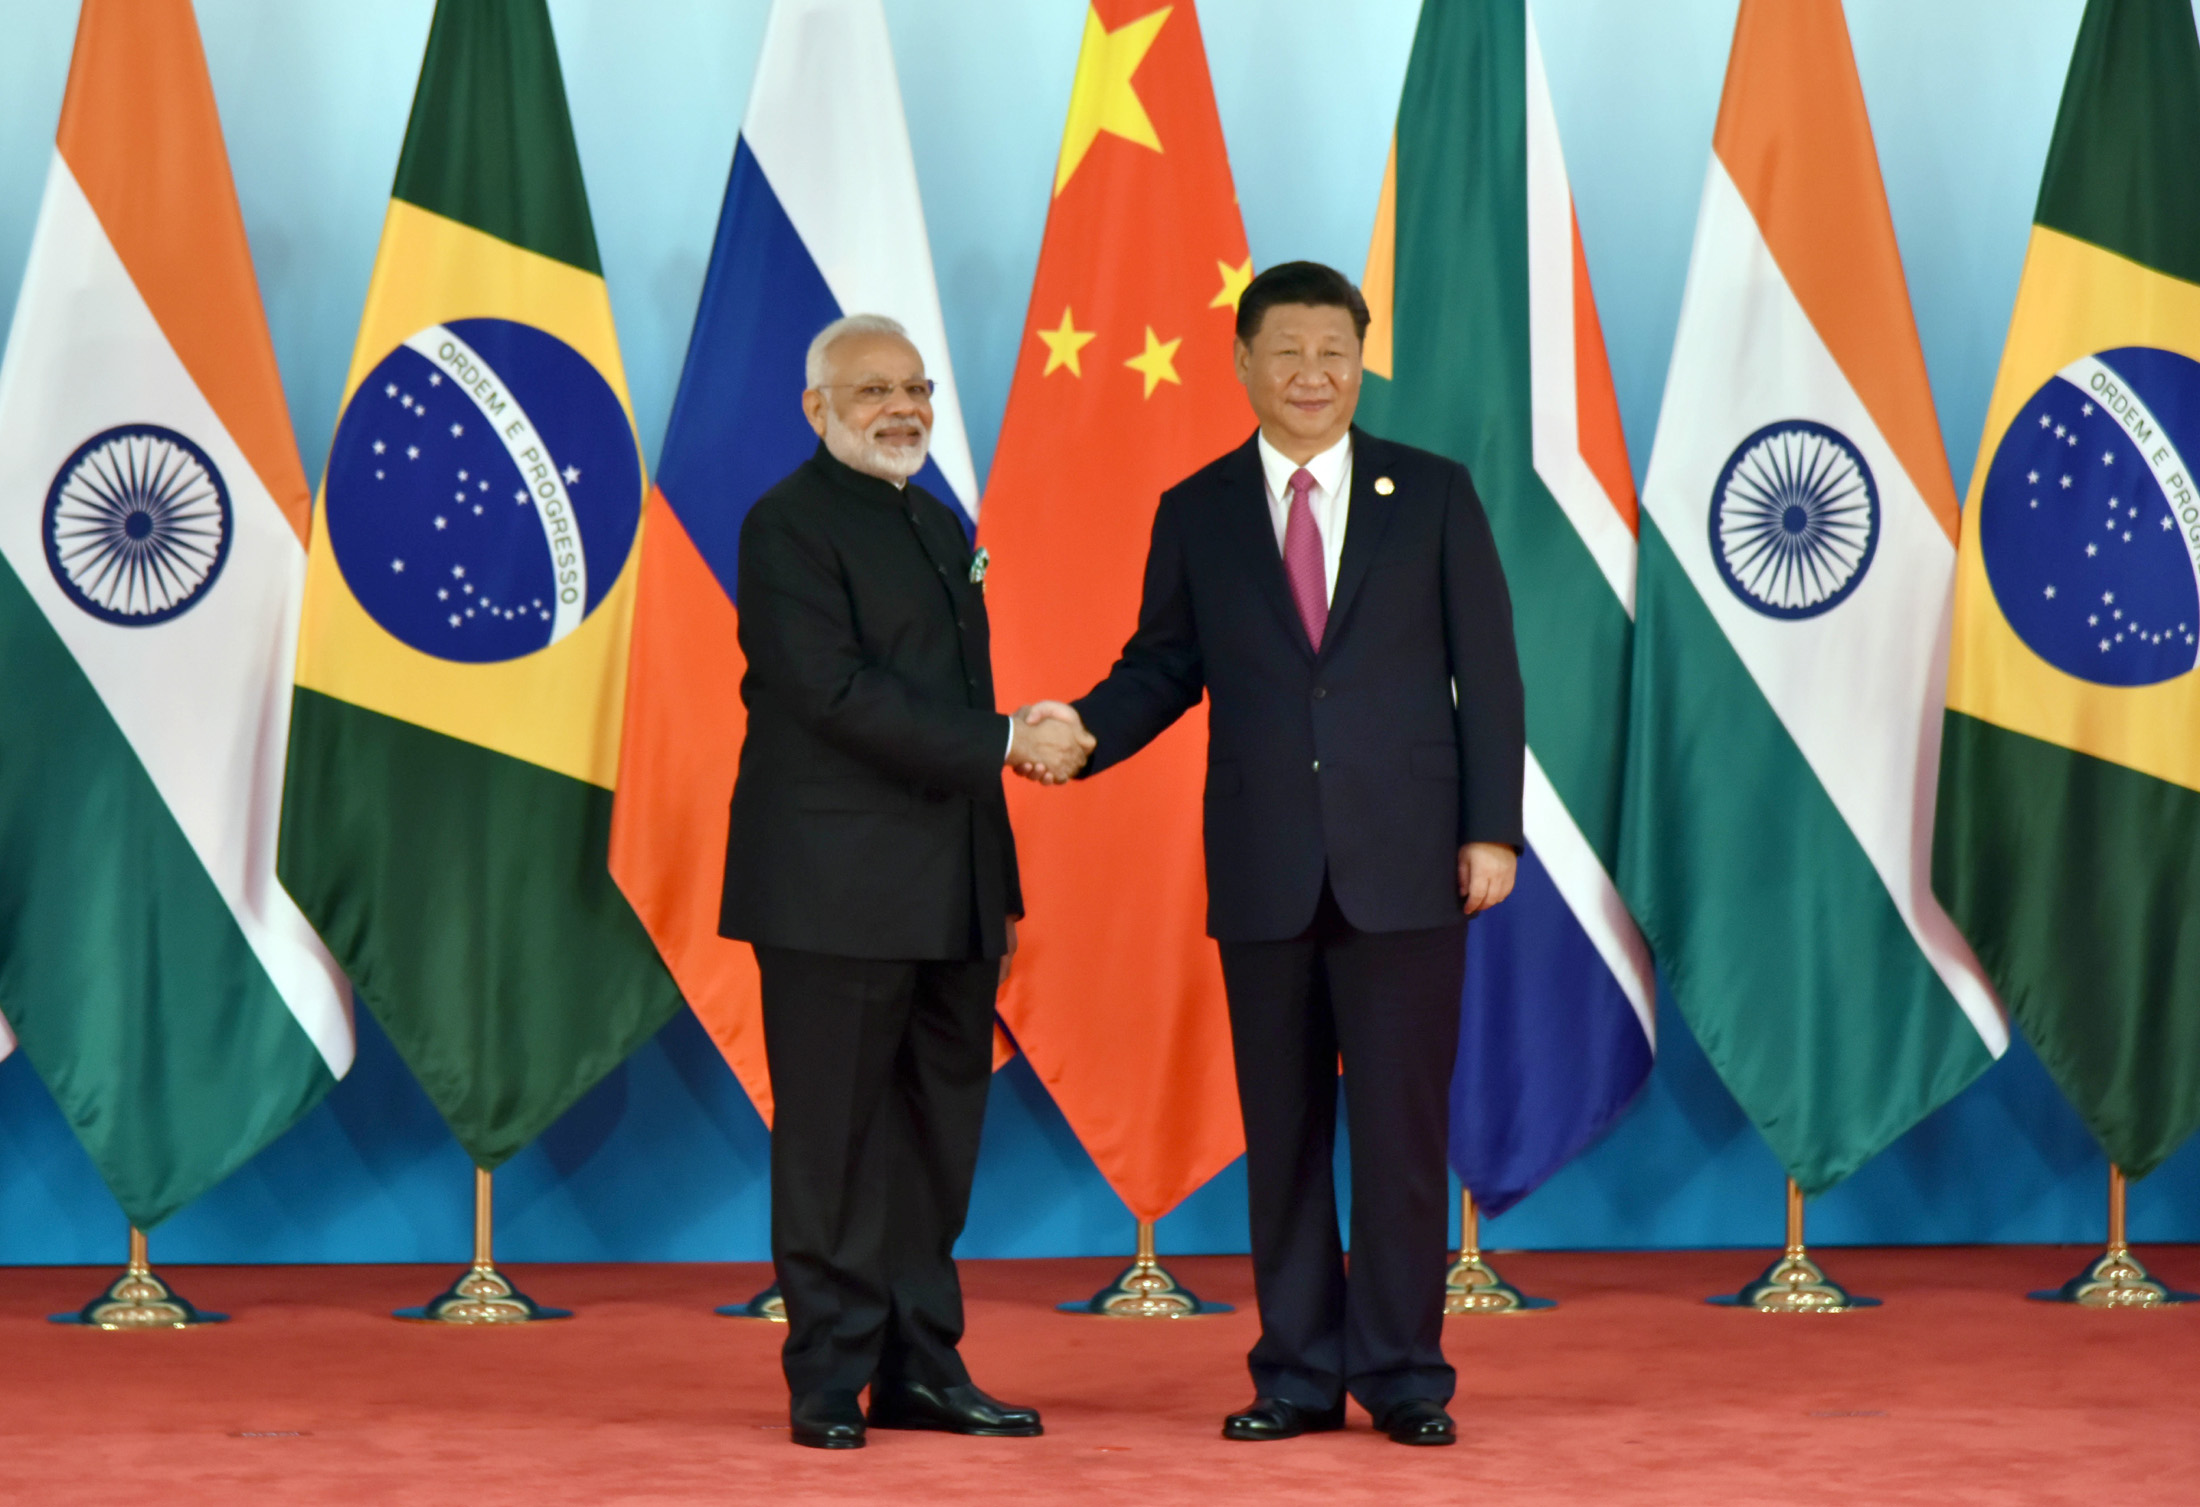 Prime Minister Narendra Modi being welcomed by the President of the People's Republic of China Xi Jinping, at the 9th BRICS Summit, in Xiamen